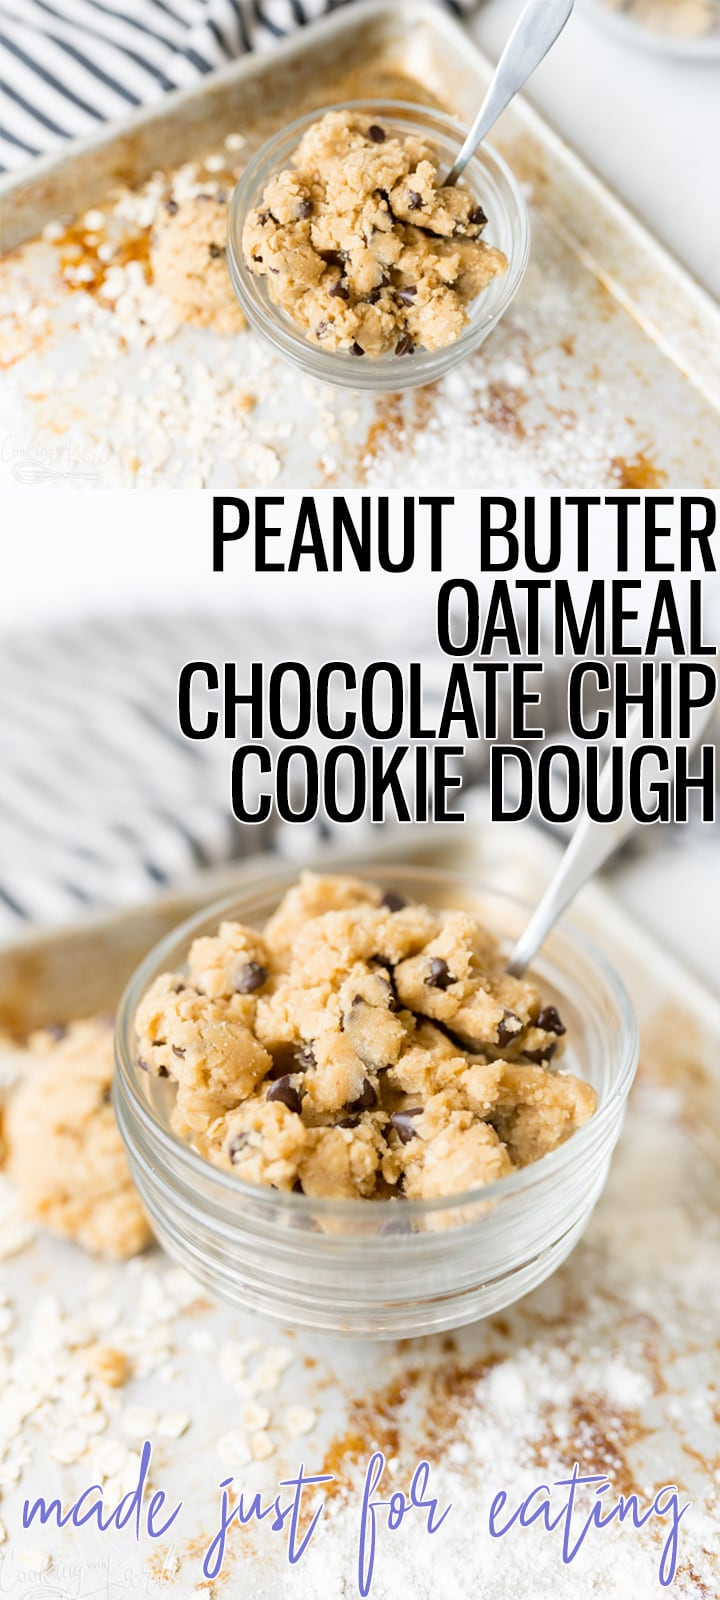 Pin image for Peanut Butter Oatmeal Chocolate Chip cookie dough